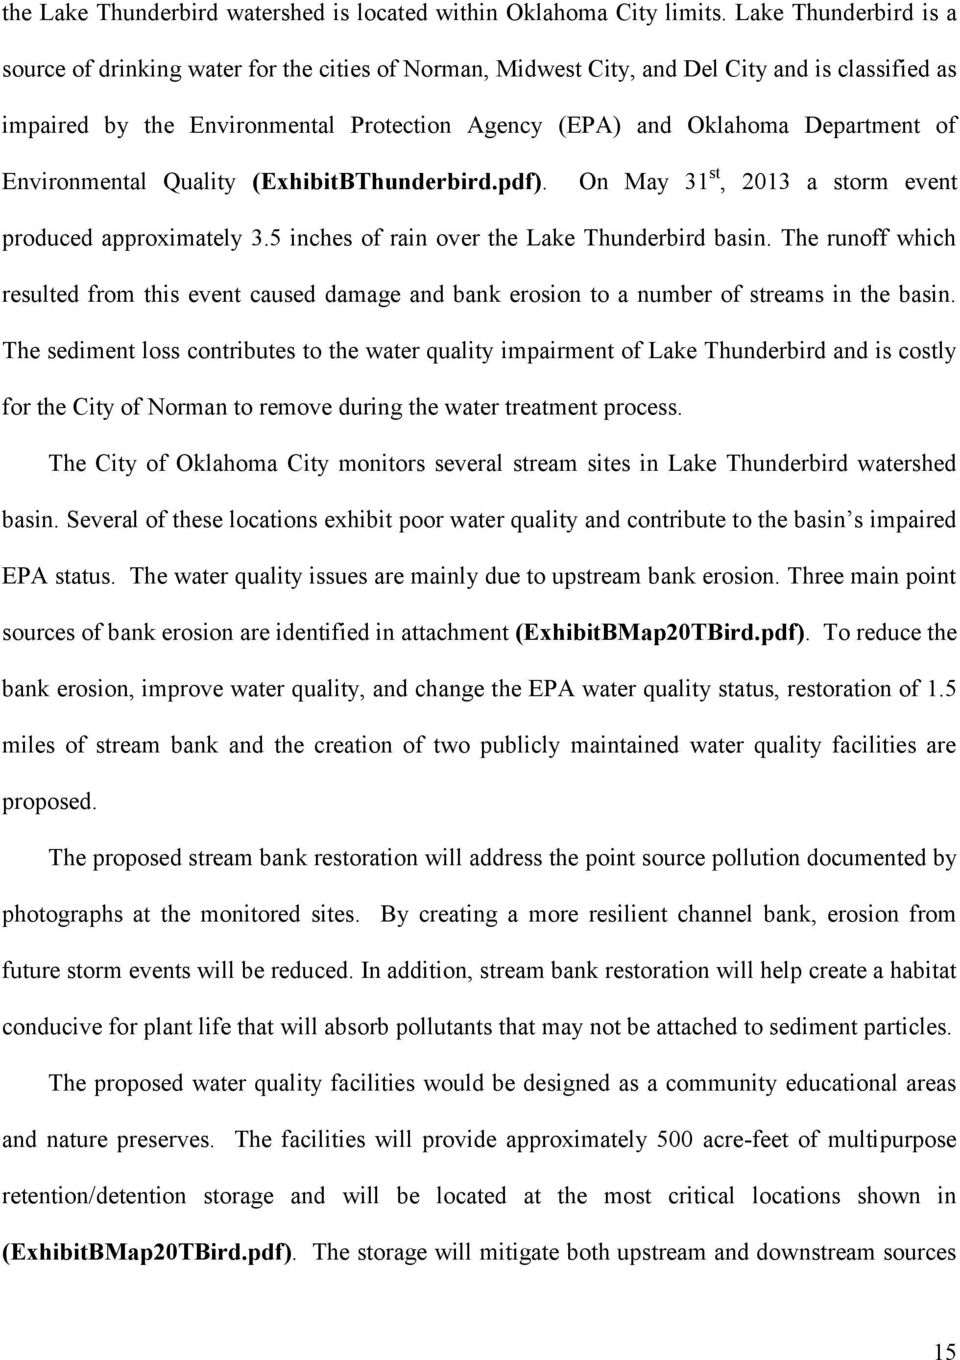 of Environmental Quality (ExhibitBThunderbird.pdf). On May 31 st, 2013 a storm event produced approximately 3.5 inches of rain over the Lake Thunderbird basin.